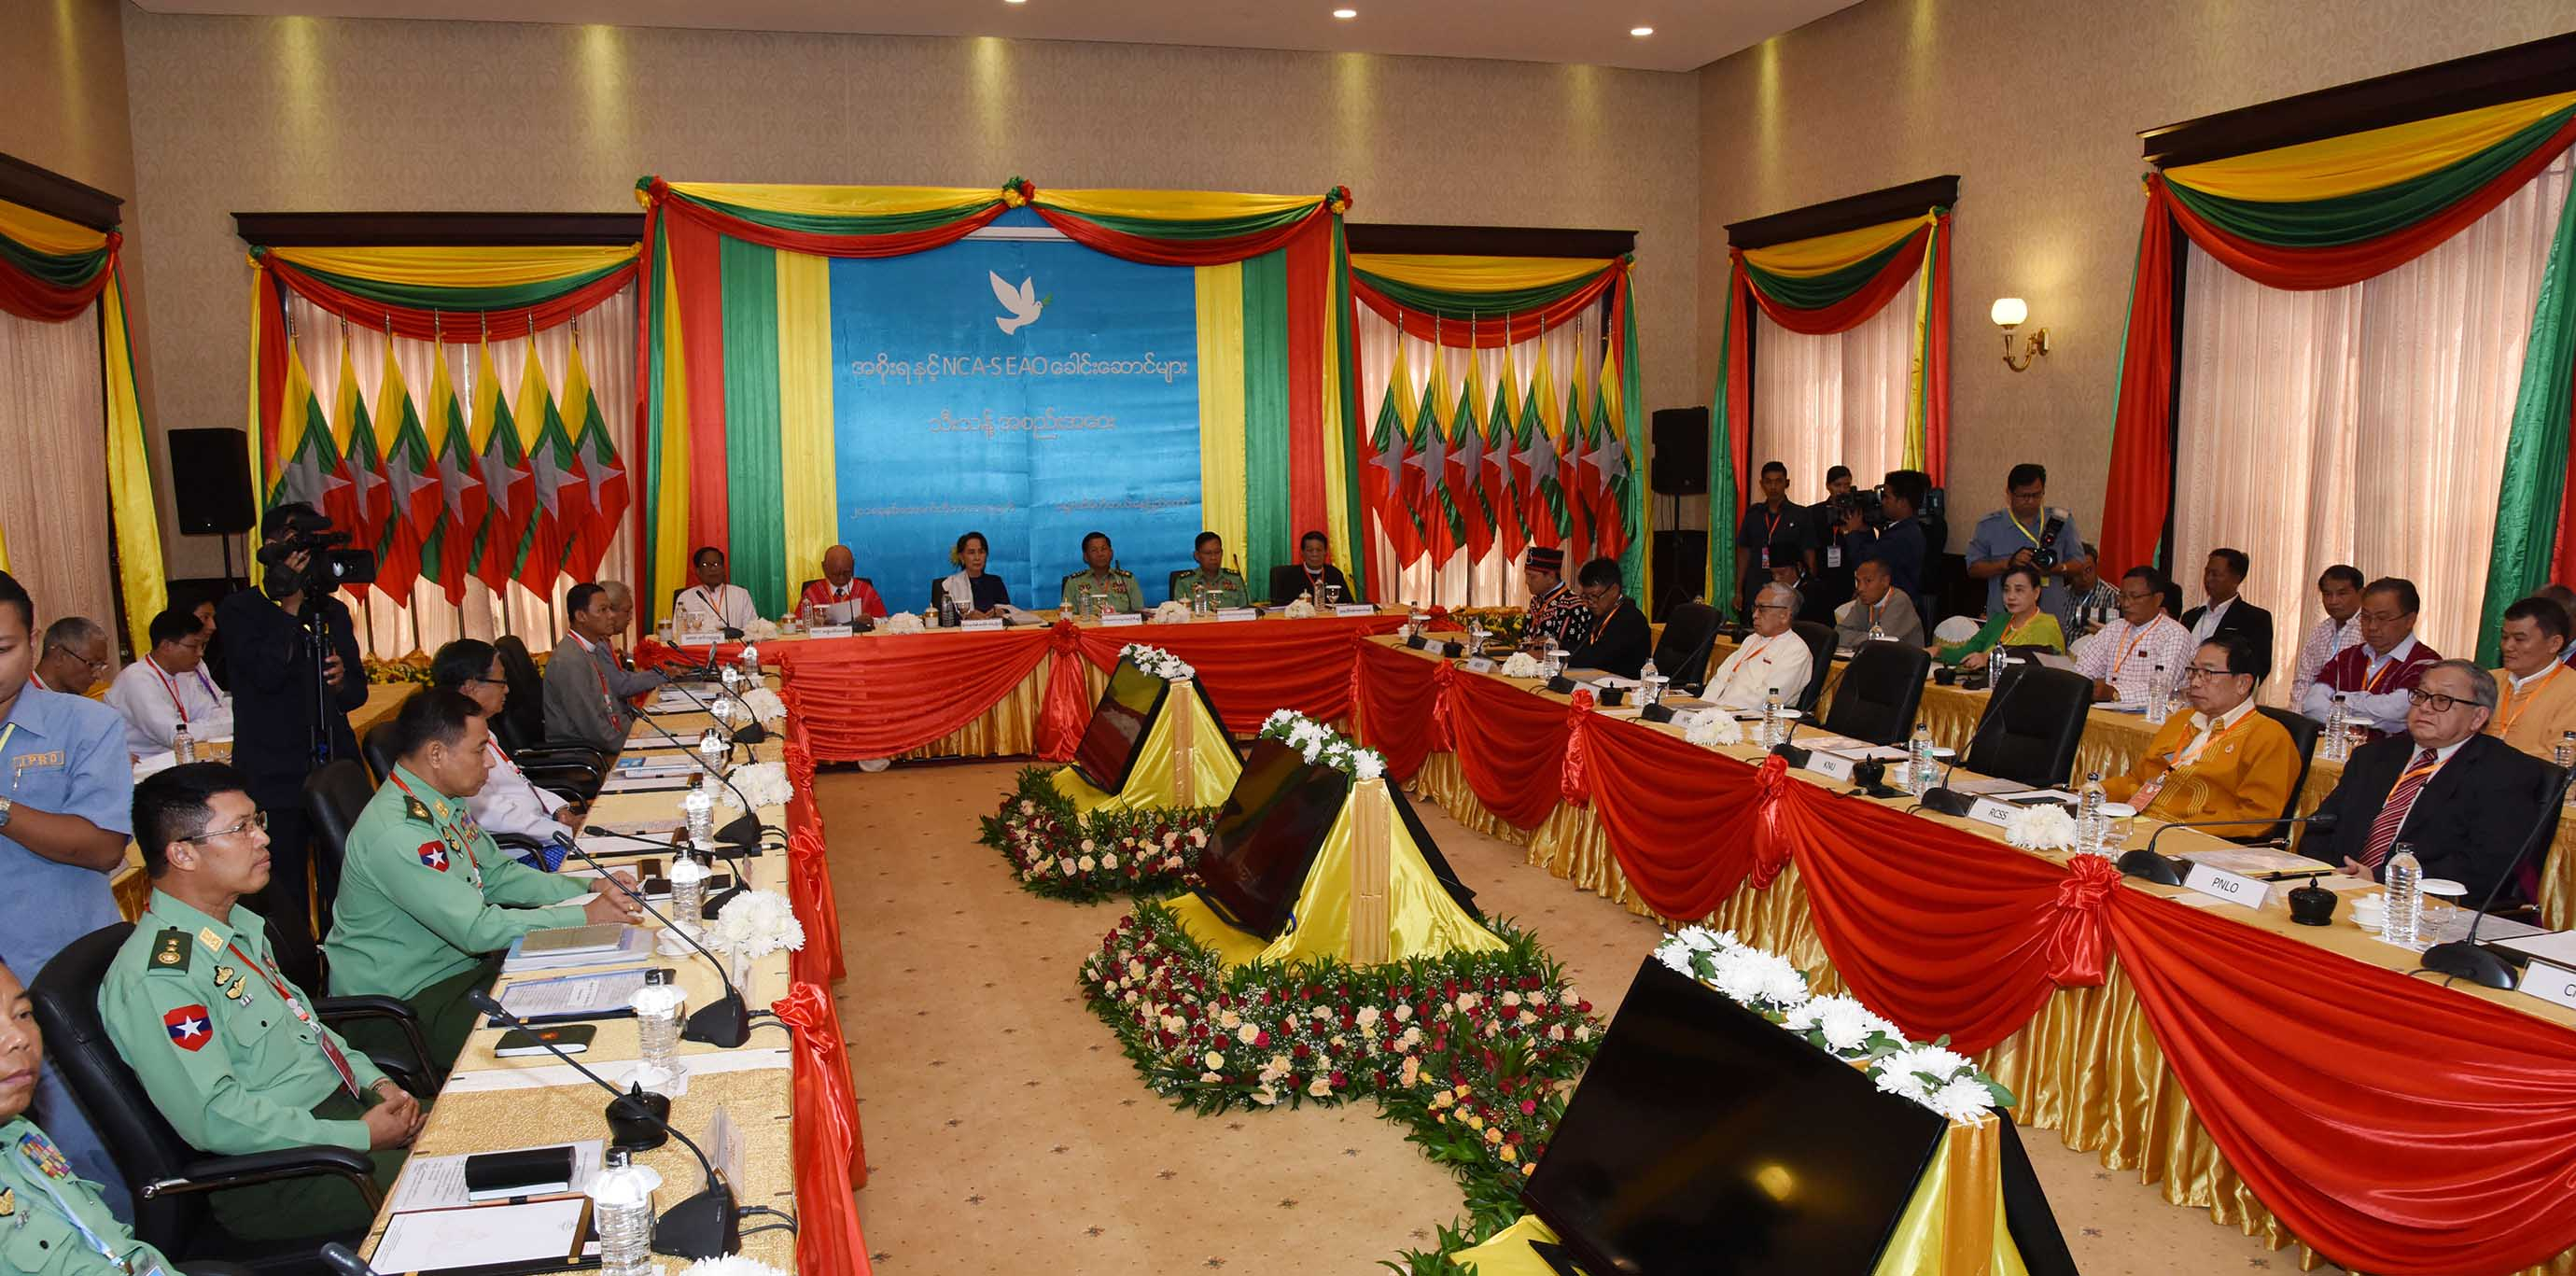 State Counsellor Daw Aung San Suu Kyi, Senior General Min Aung Hlaing and leaders from Nationwide Ceasefire Agreement Signatory Ethnic Armed Organizations attend a special meeting between the Union Government and NCA Signatory EAOs in Nay Pyi Taw yesterday.Photo: MNA